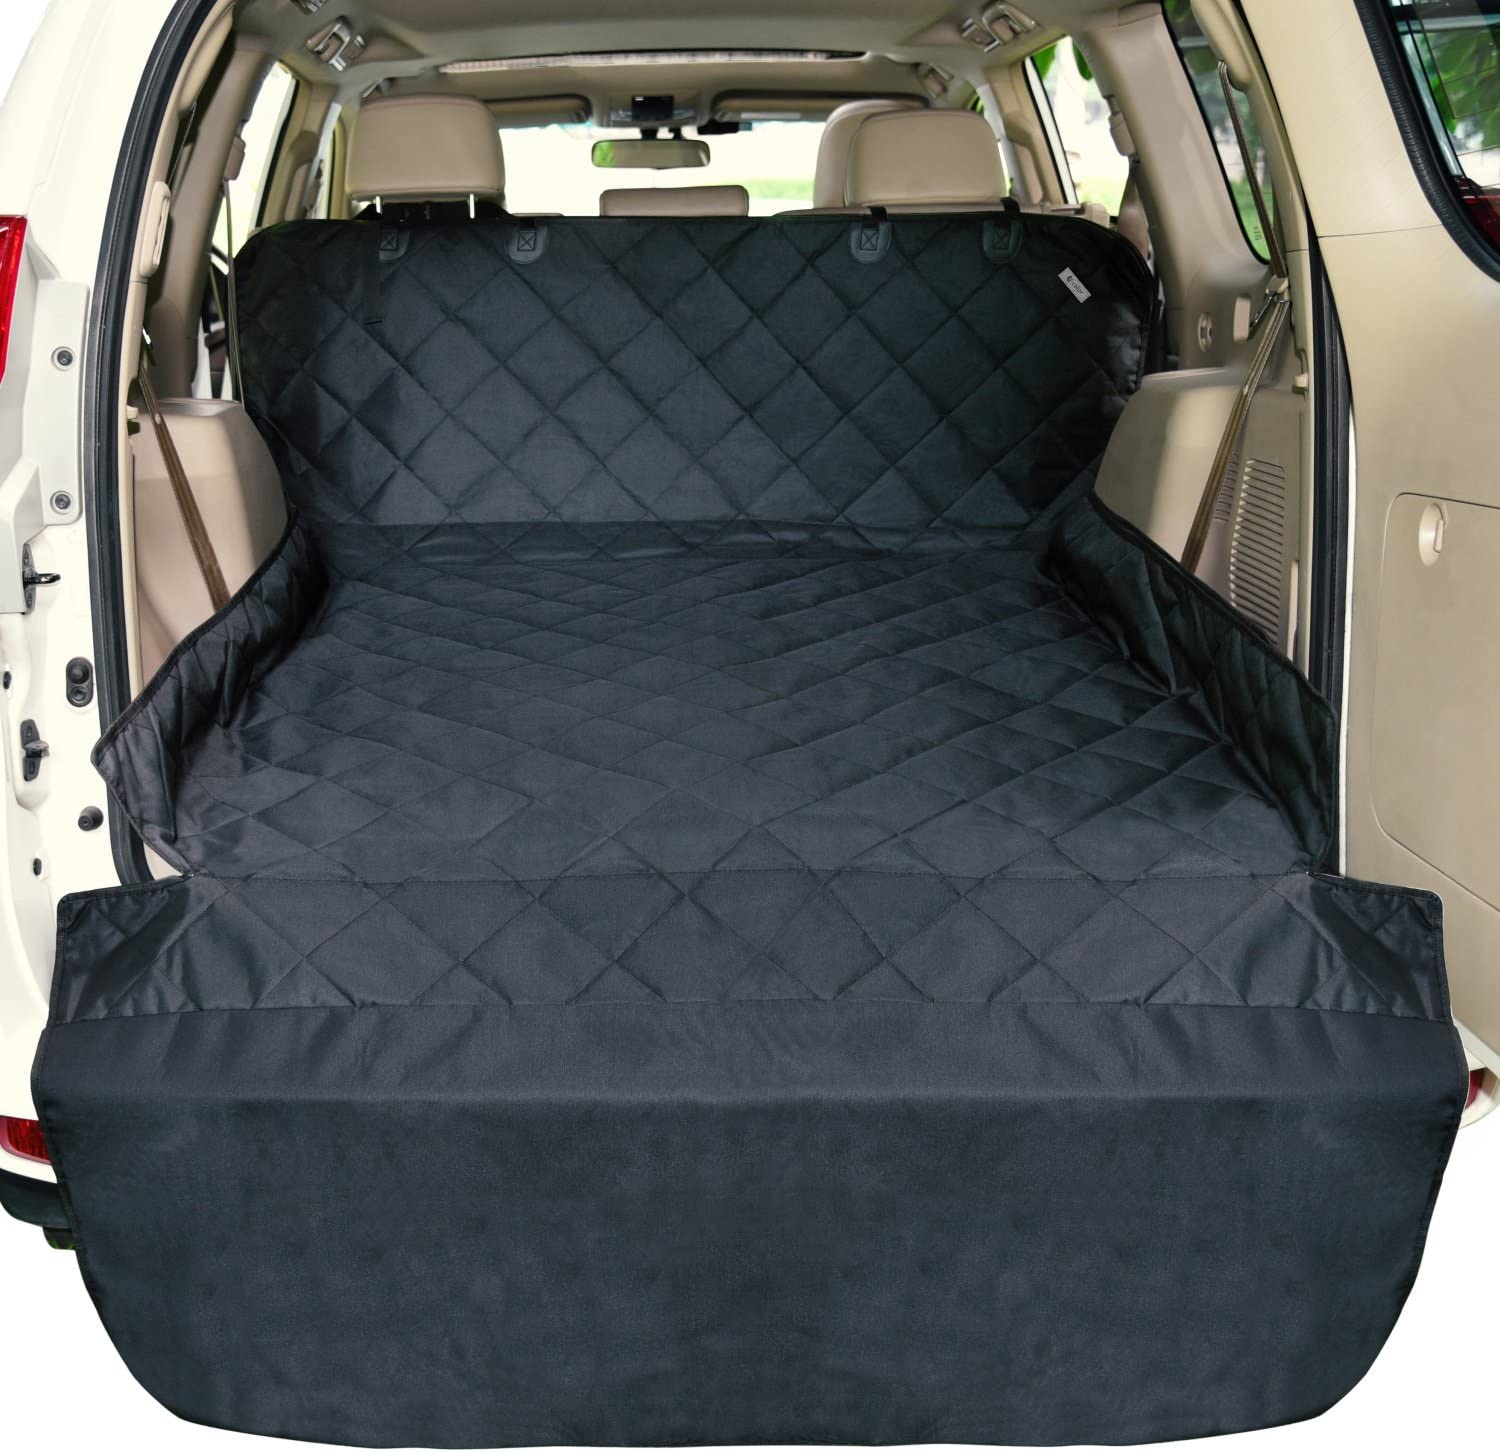 F-color SUV Cargo Liner for Dogs, Waterproof Pet Cargo Cover Dog Seat Cover Mat for SUVs Sedans Vans with Bumper Flap Protector, Non-Slip, Large Size Universal Fit